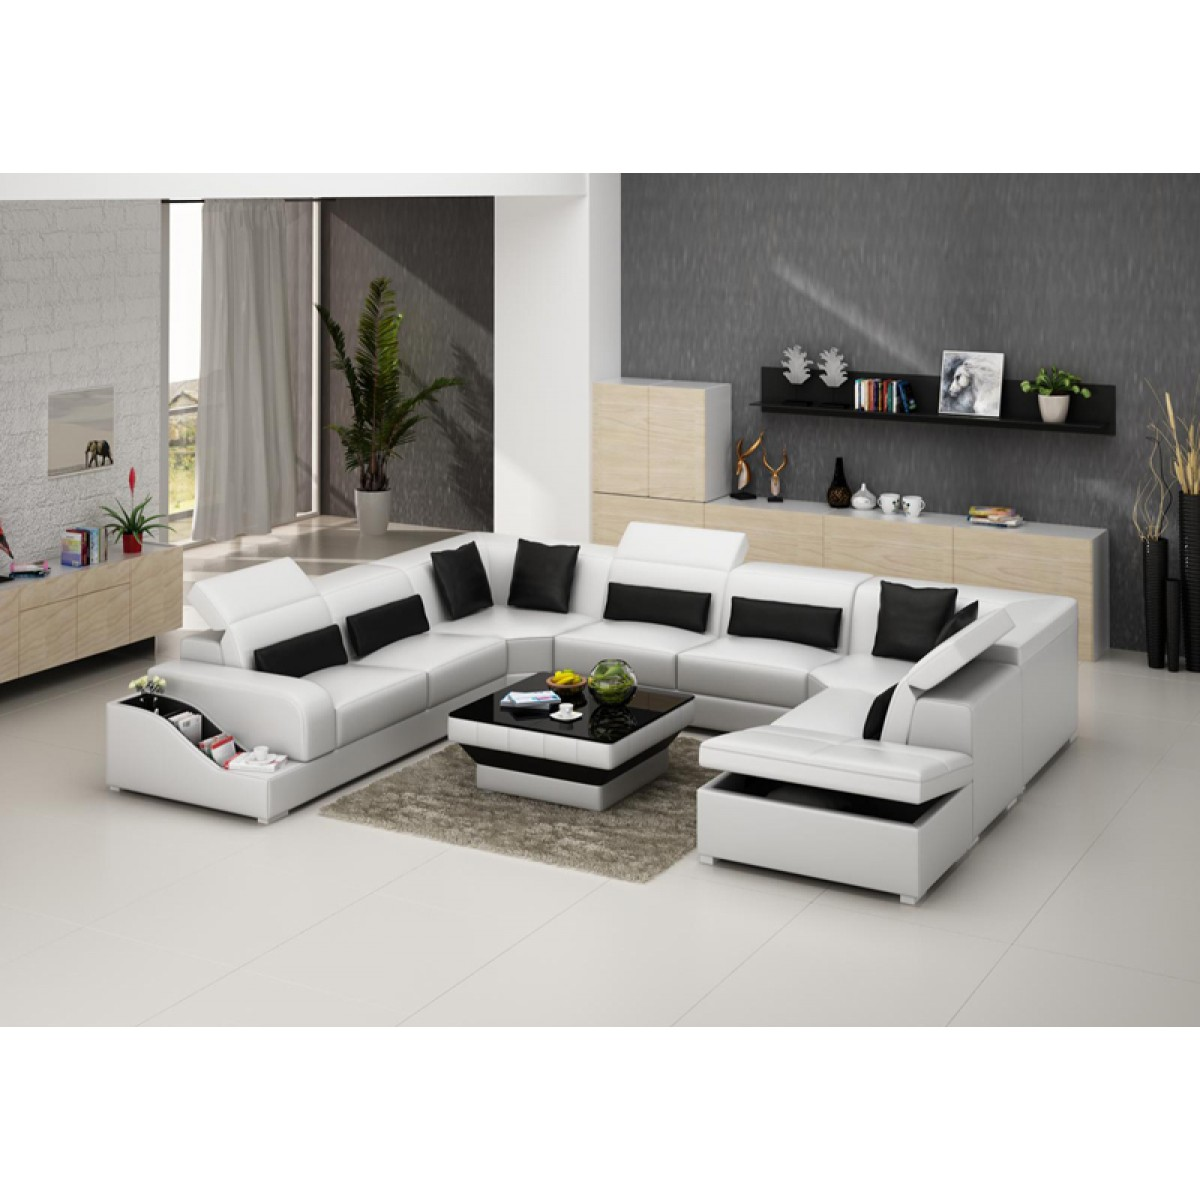 Canape d angle 6 8 places royal sofa id e de canap et for Canape d angle 6 places